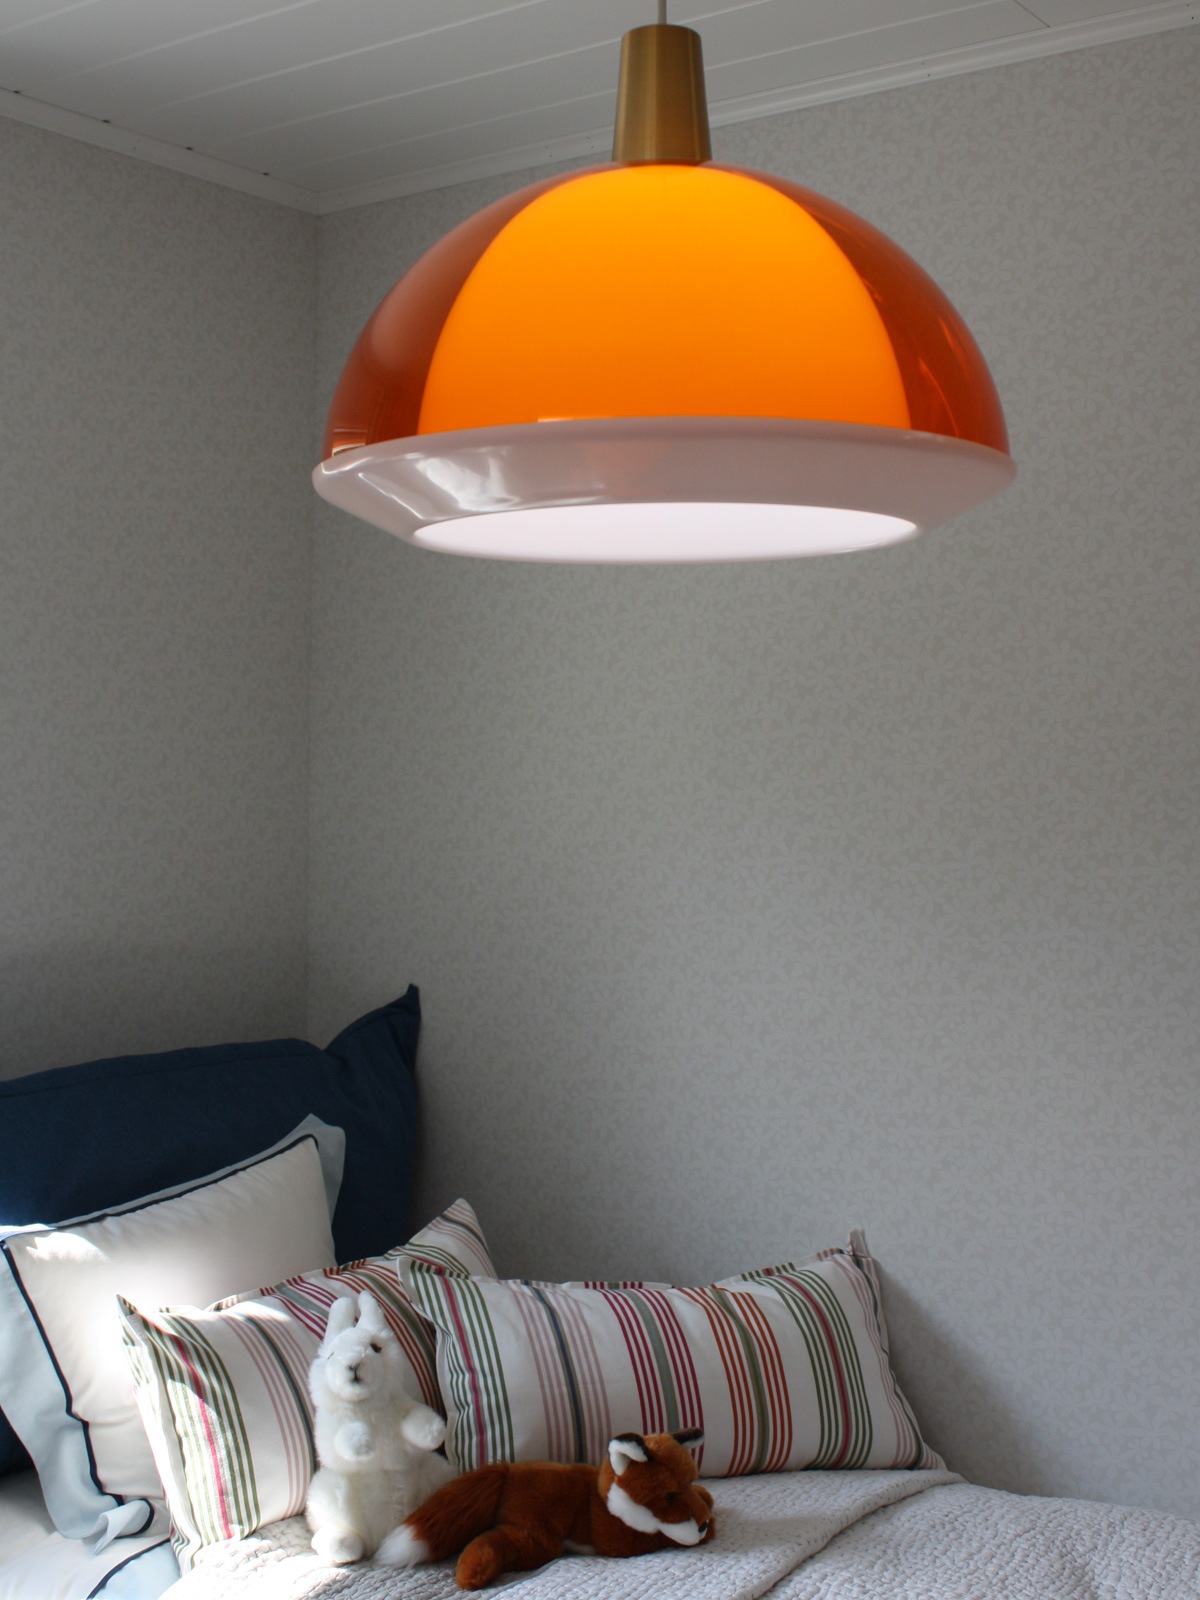 Designerleuchten In Orange Designort Com